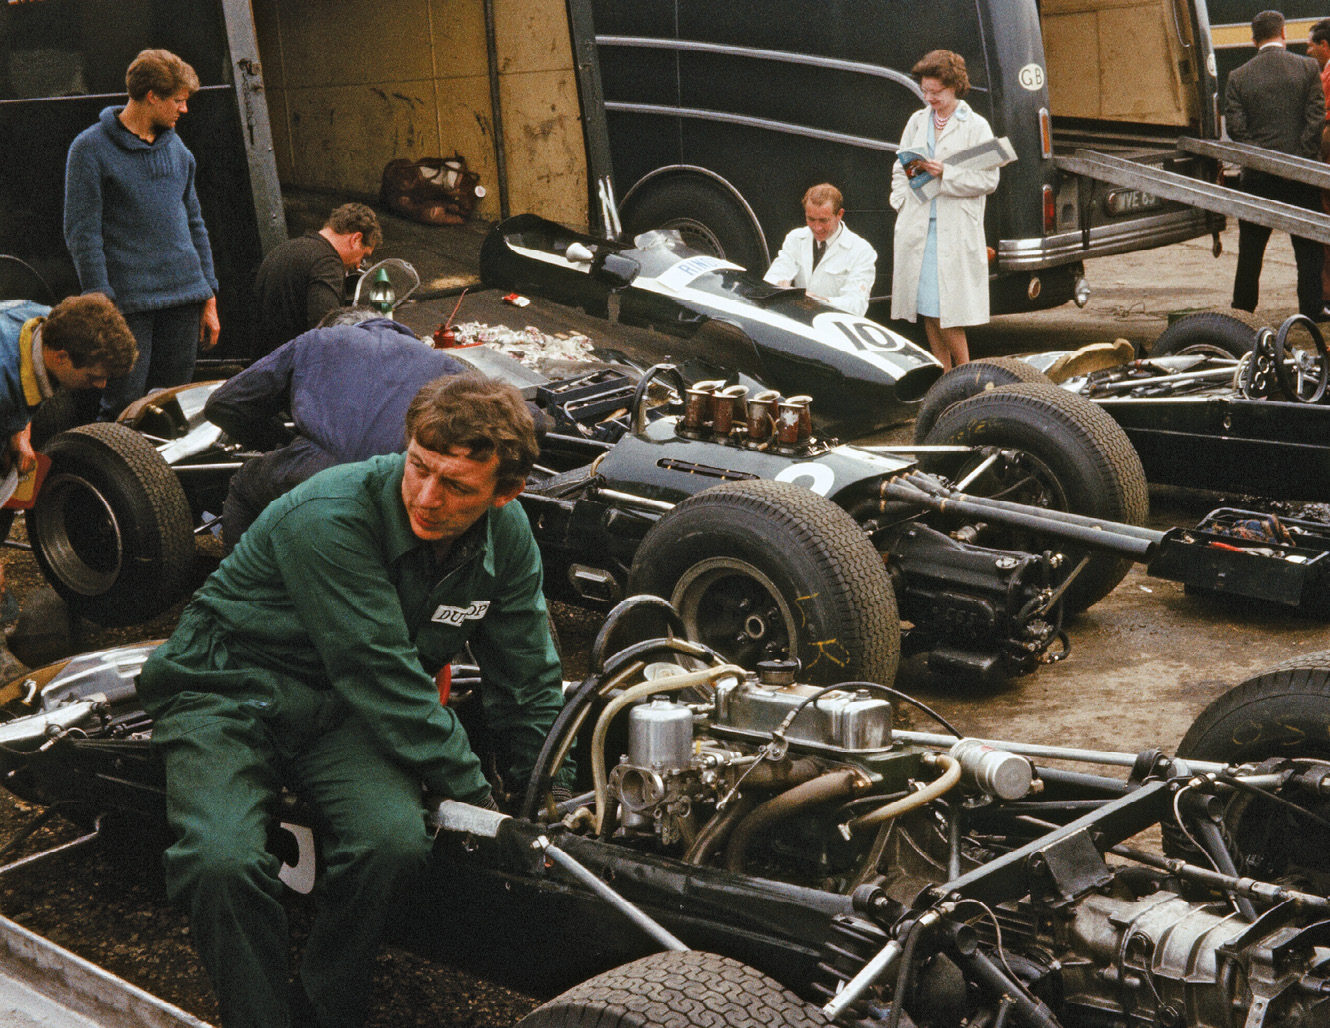 The Silverstone pits in more basic times: factory Cooper mechanics fettle the Climax-engined T77s of Bruce McLaren and Jochen Rindt